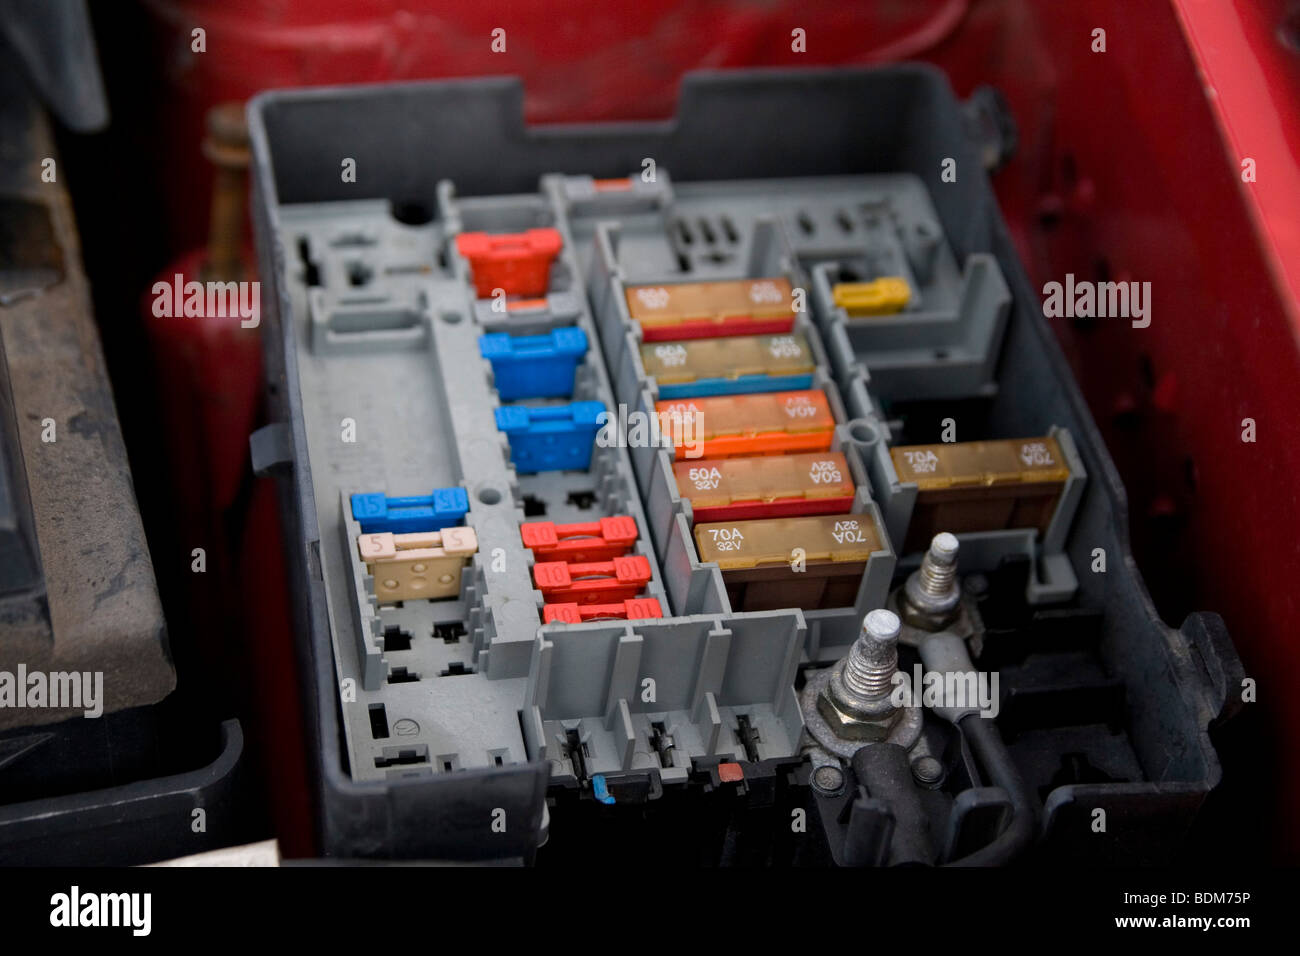 citroen berlingo fuse box BDM75P citroen berlingo fuse box stock photo, royalty free image water in fuse box car at mifinder.co